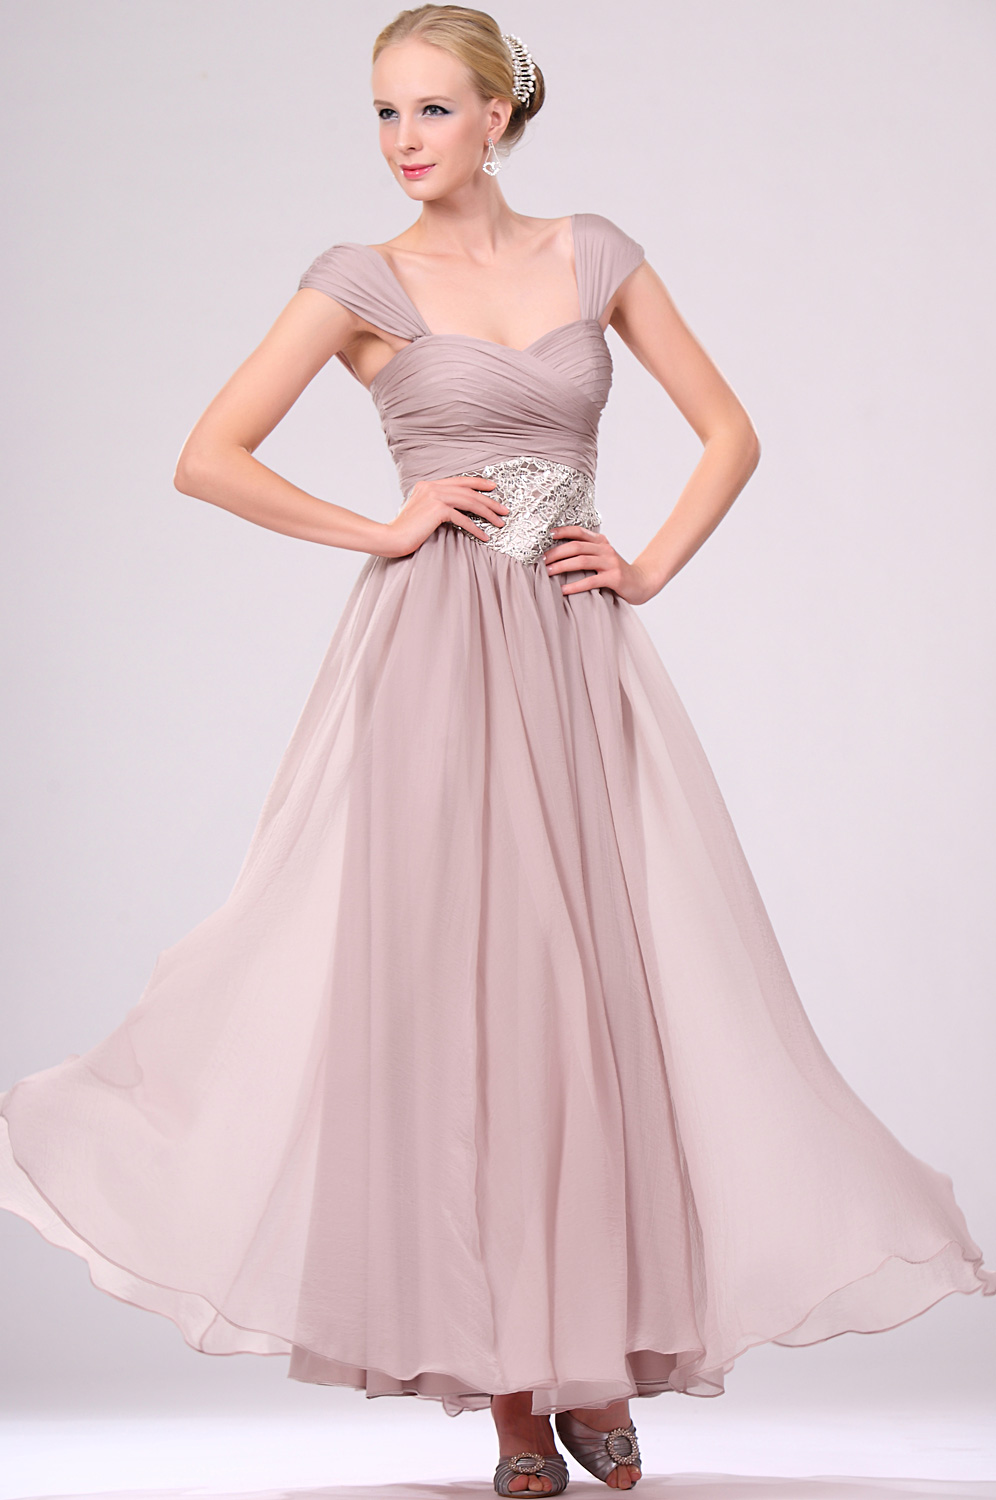 eDressit 2011 New Stylish Cap-sleeve/Strapless Evening Gown (00105046)